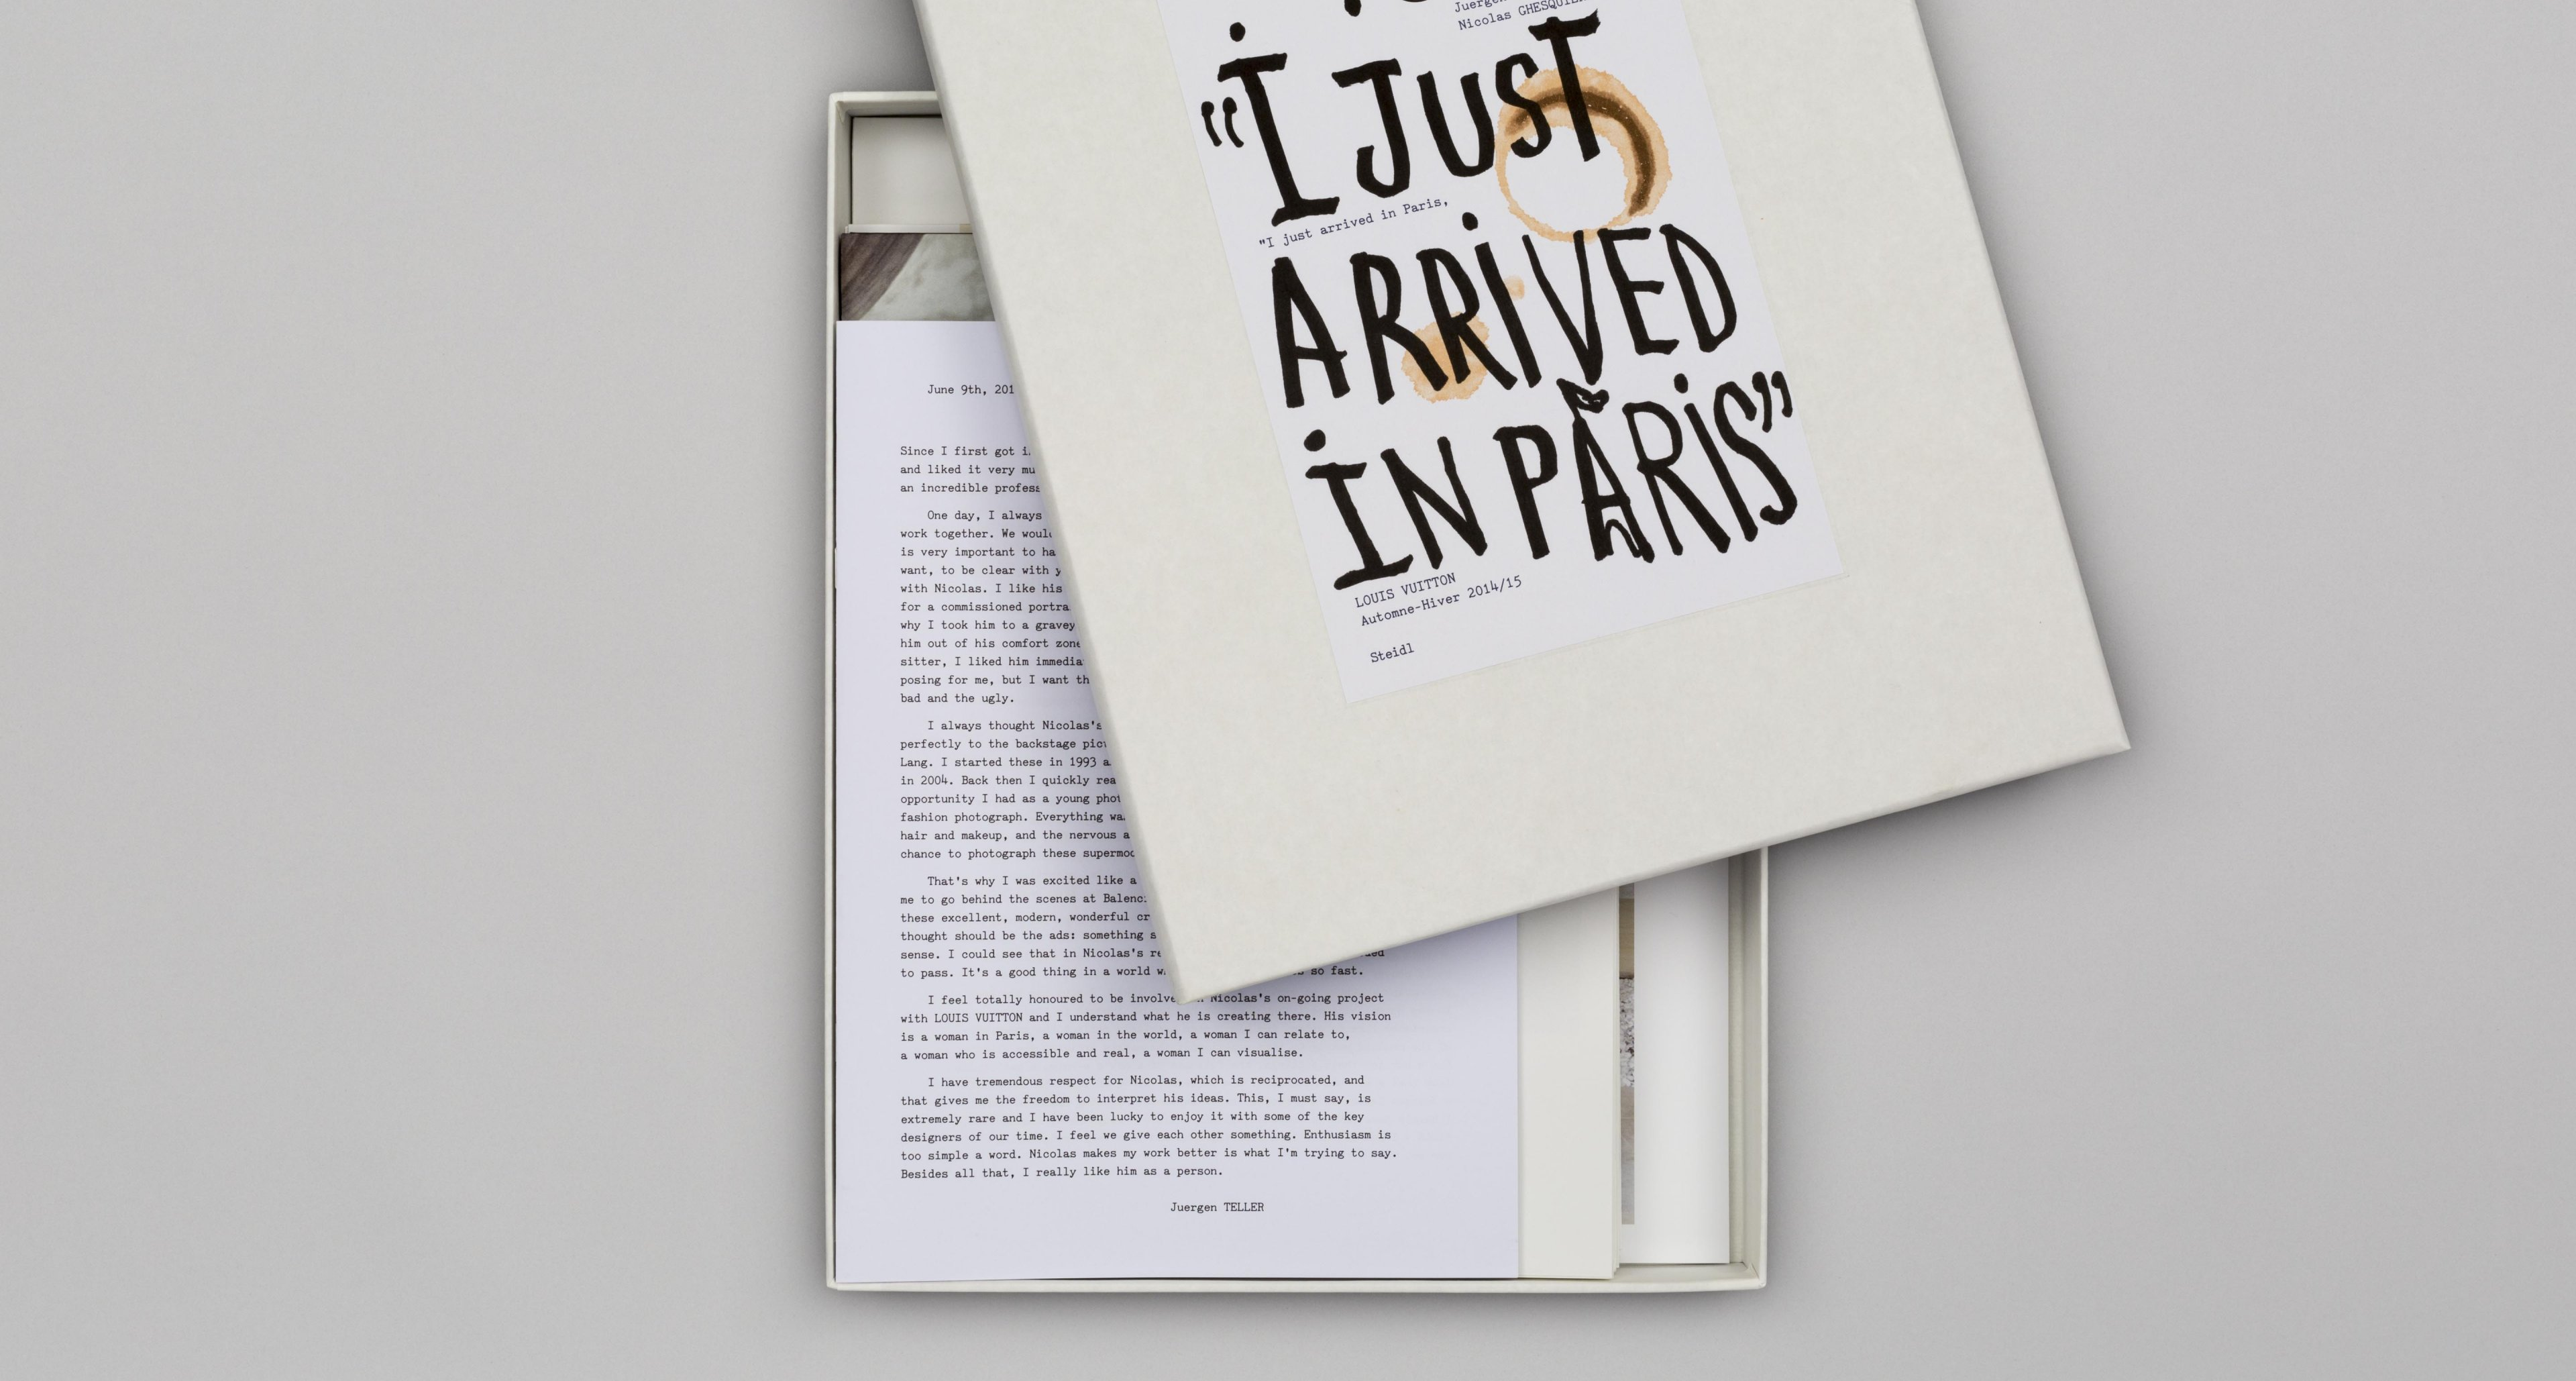 Juergen Teller/Nicolas Ghesquière: I Just Arrived in Paris Copyright: (c) 2014 Juergen Teller for the images, book published  by Steidl 2014